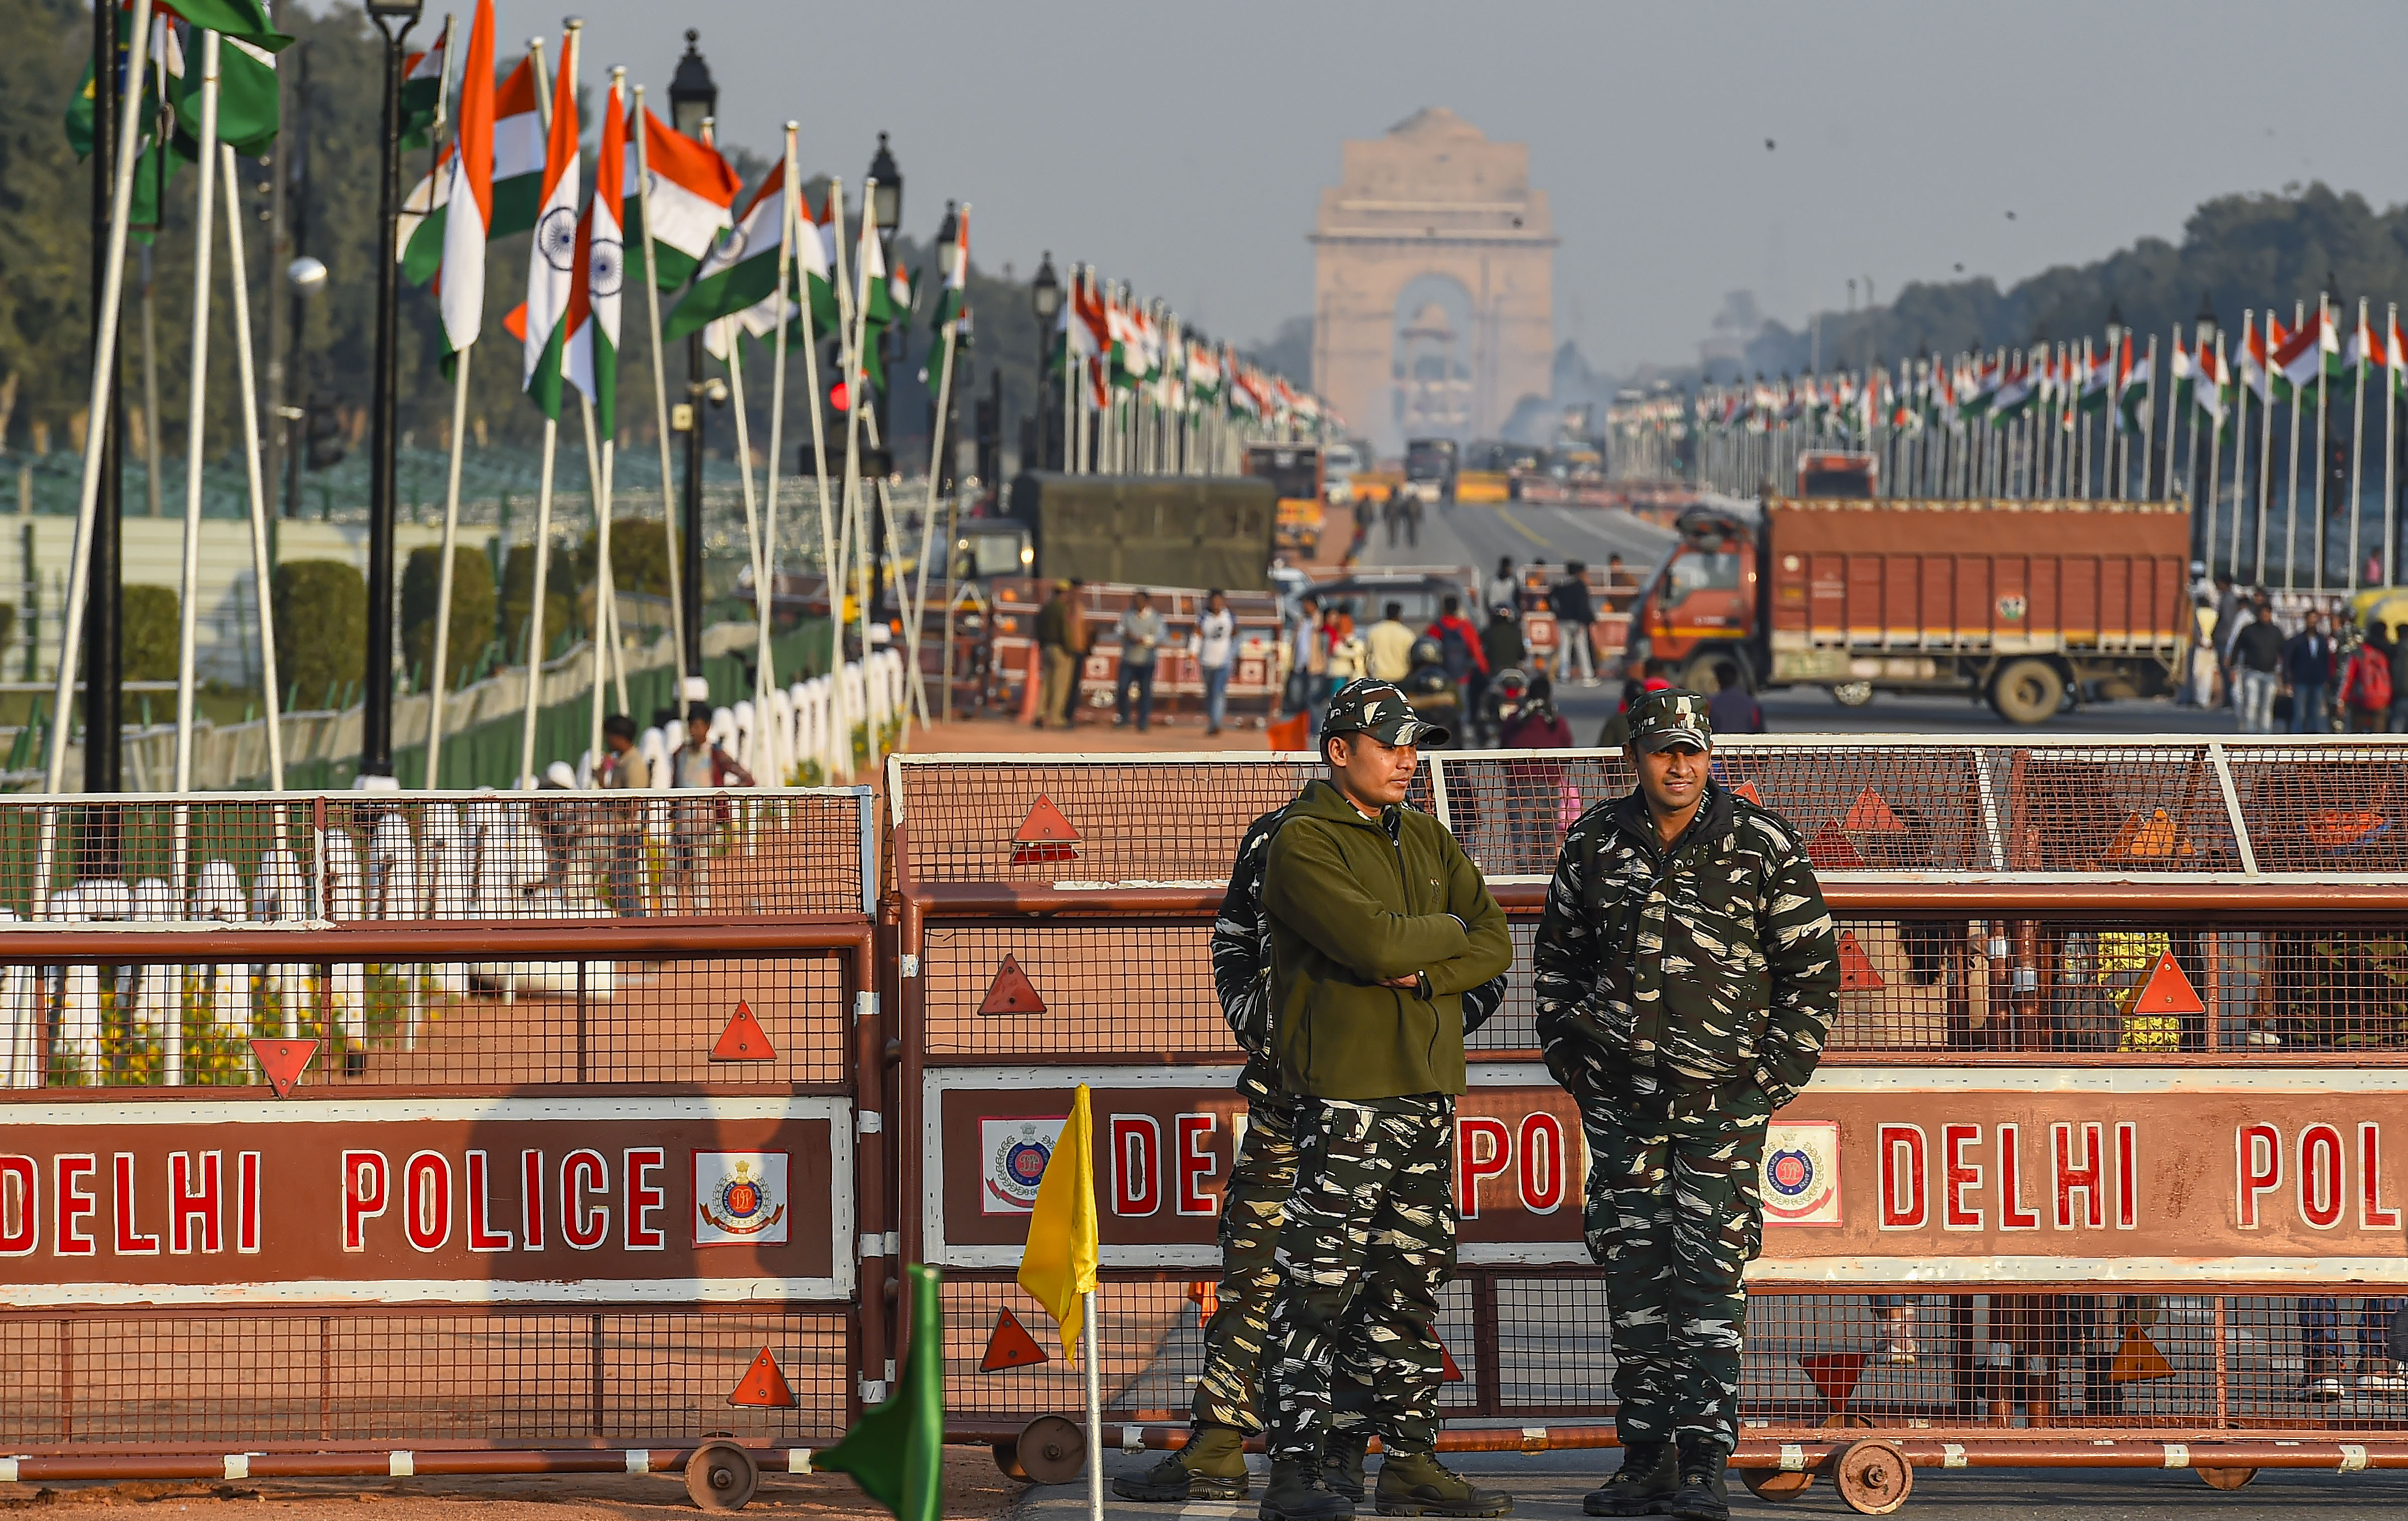 Security personnel stand guard at the Rajpath, which is decked up for the Republic Day Parade, in New Delhi, Saturday, January 25, 2020.